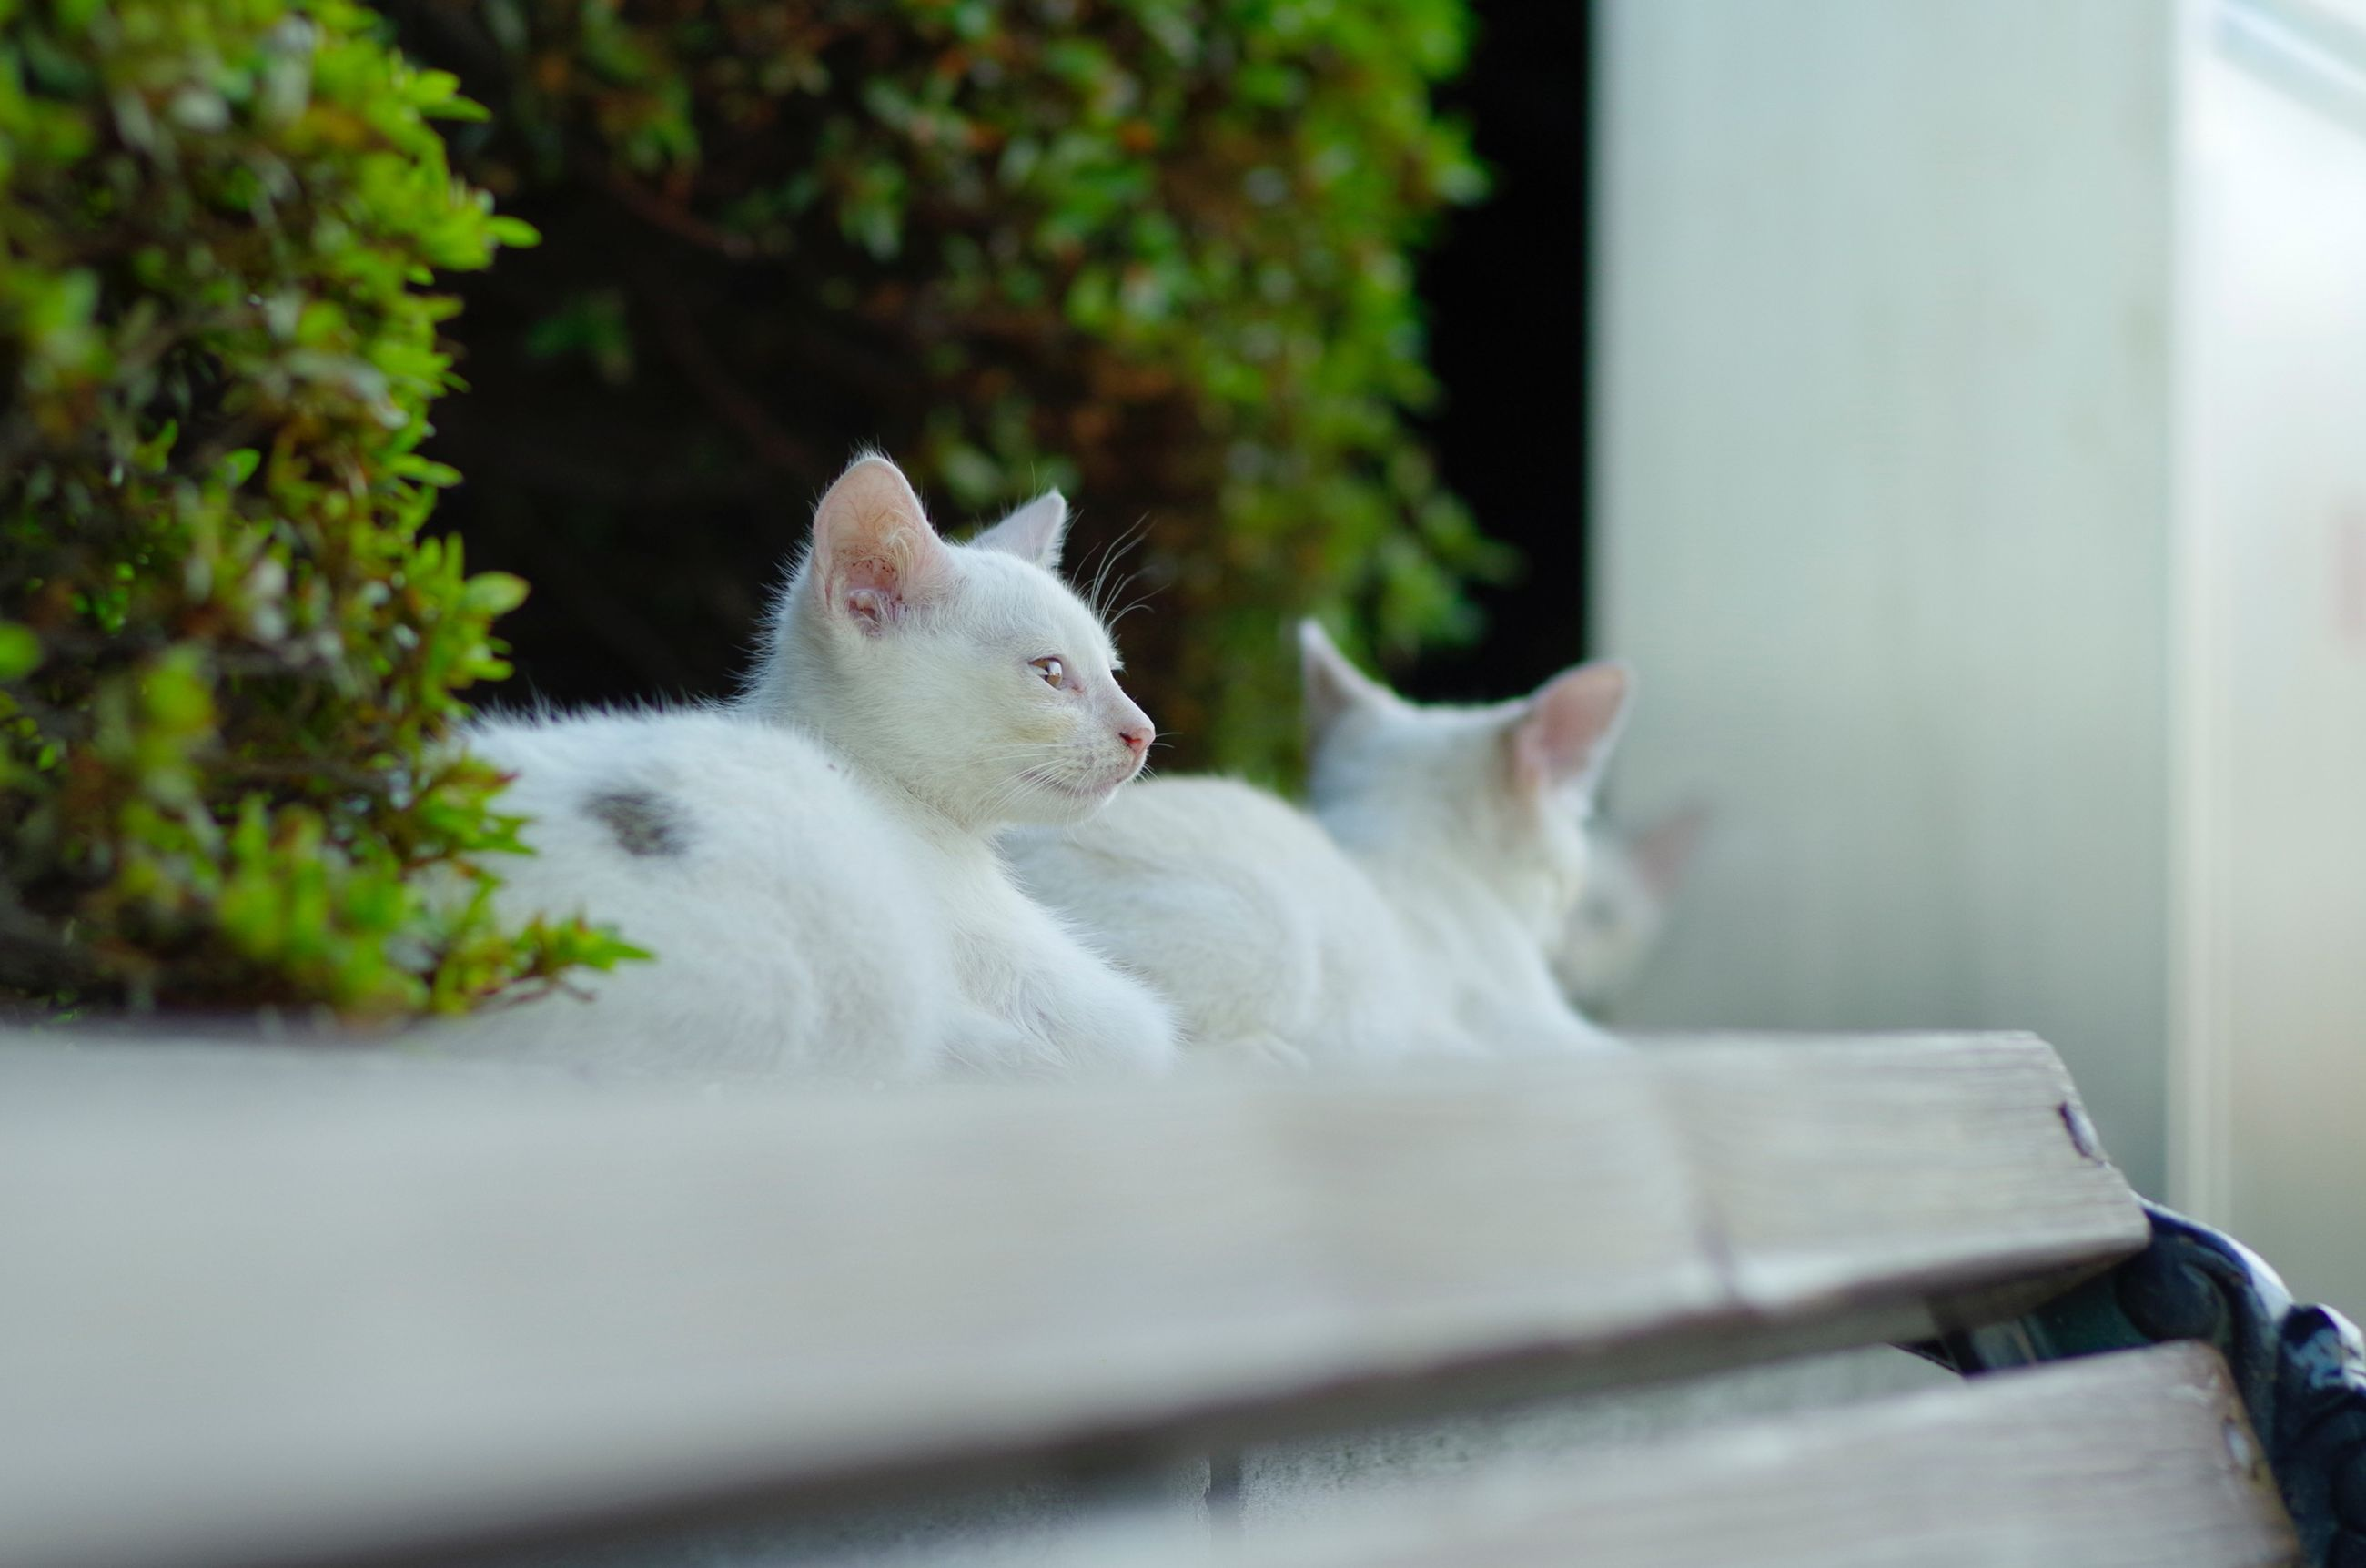 domestic cat, cat, pets, domestic animals, animal themes, one animal, feline, mammal, whisker, relaxation, white color, indoors, potted plant, sitting, selective focus, resting, close-up, no people, plant, lying down